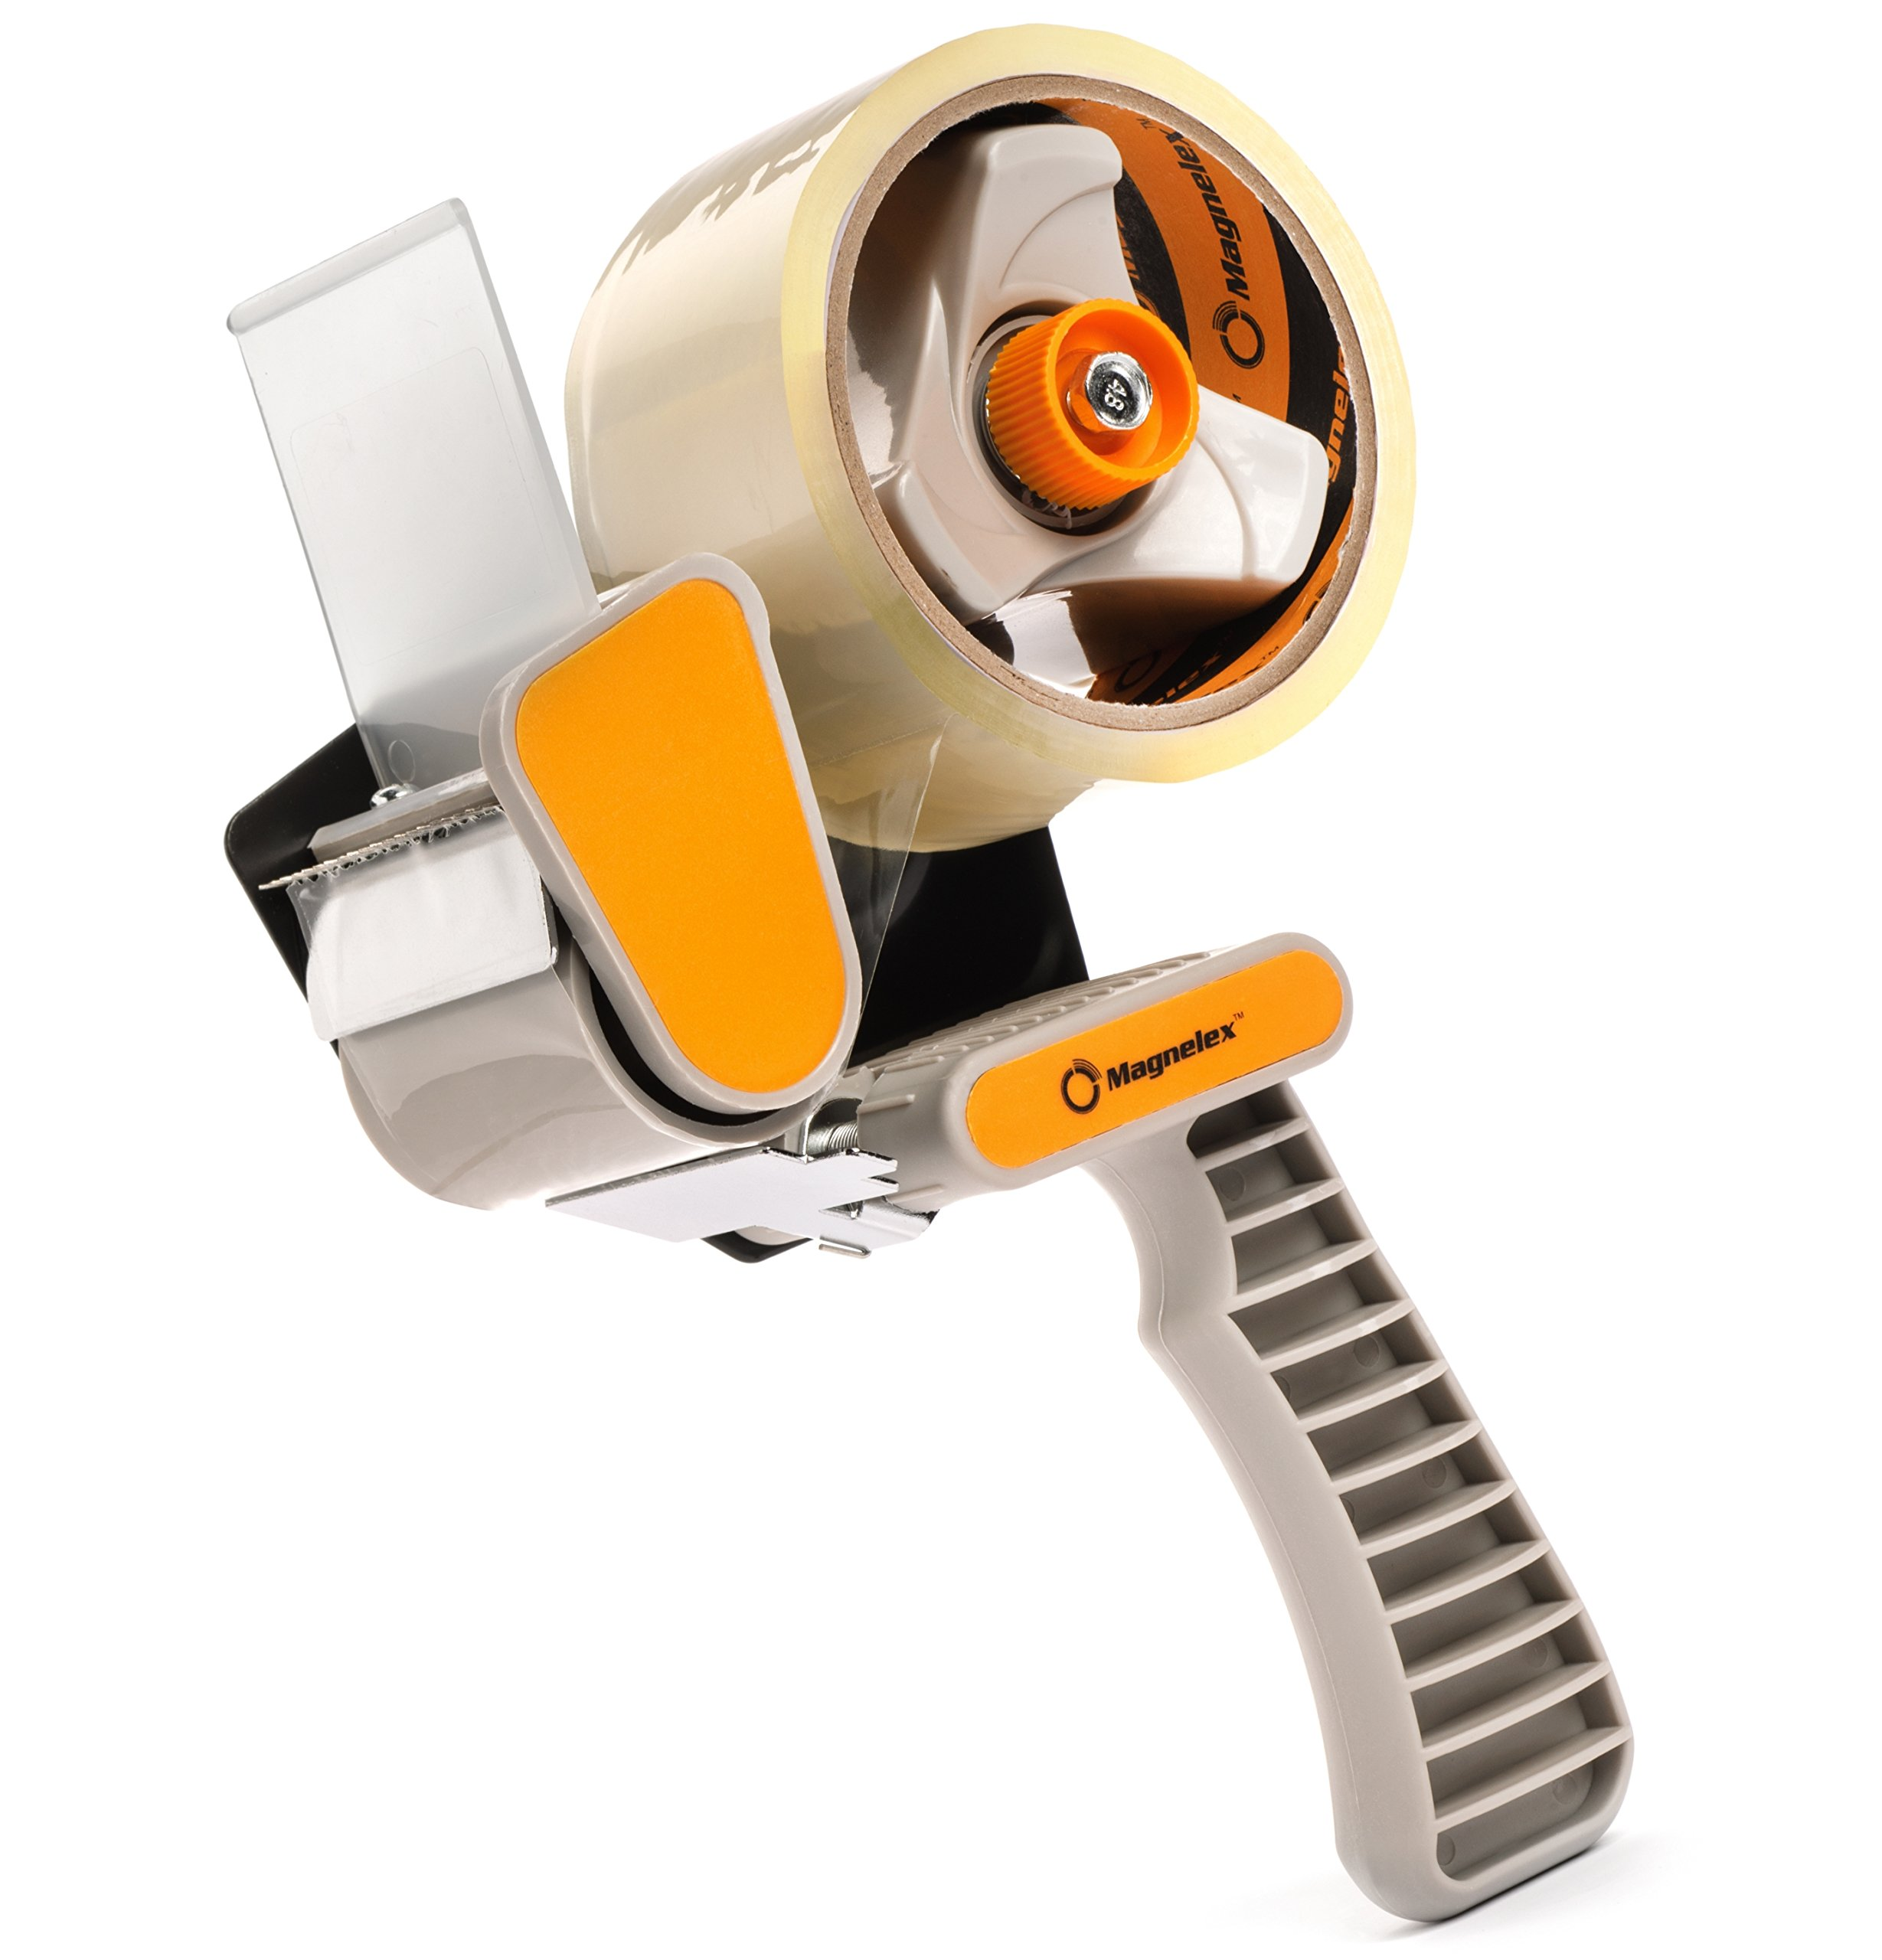 Tapexpert Packing Tape Gun with 1 Free Roll of Packaging Tape, Easy To Tape Boxes, Seal Cartons, Easy Side Loading, Best Tape Dispenser for Shipping, Packaging and Moving